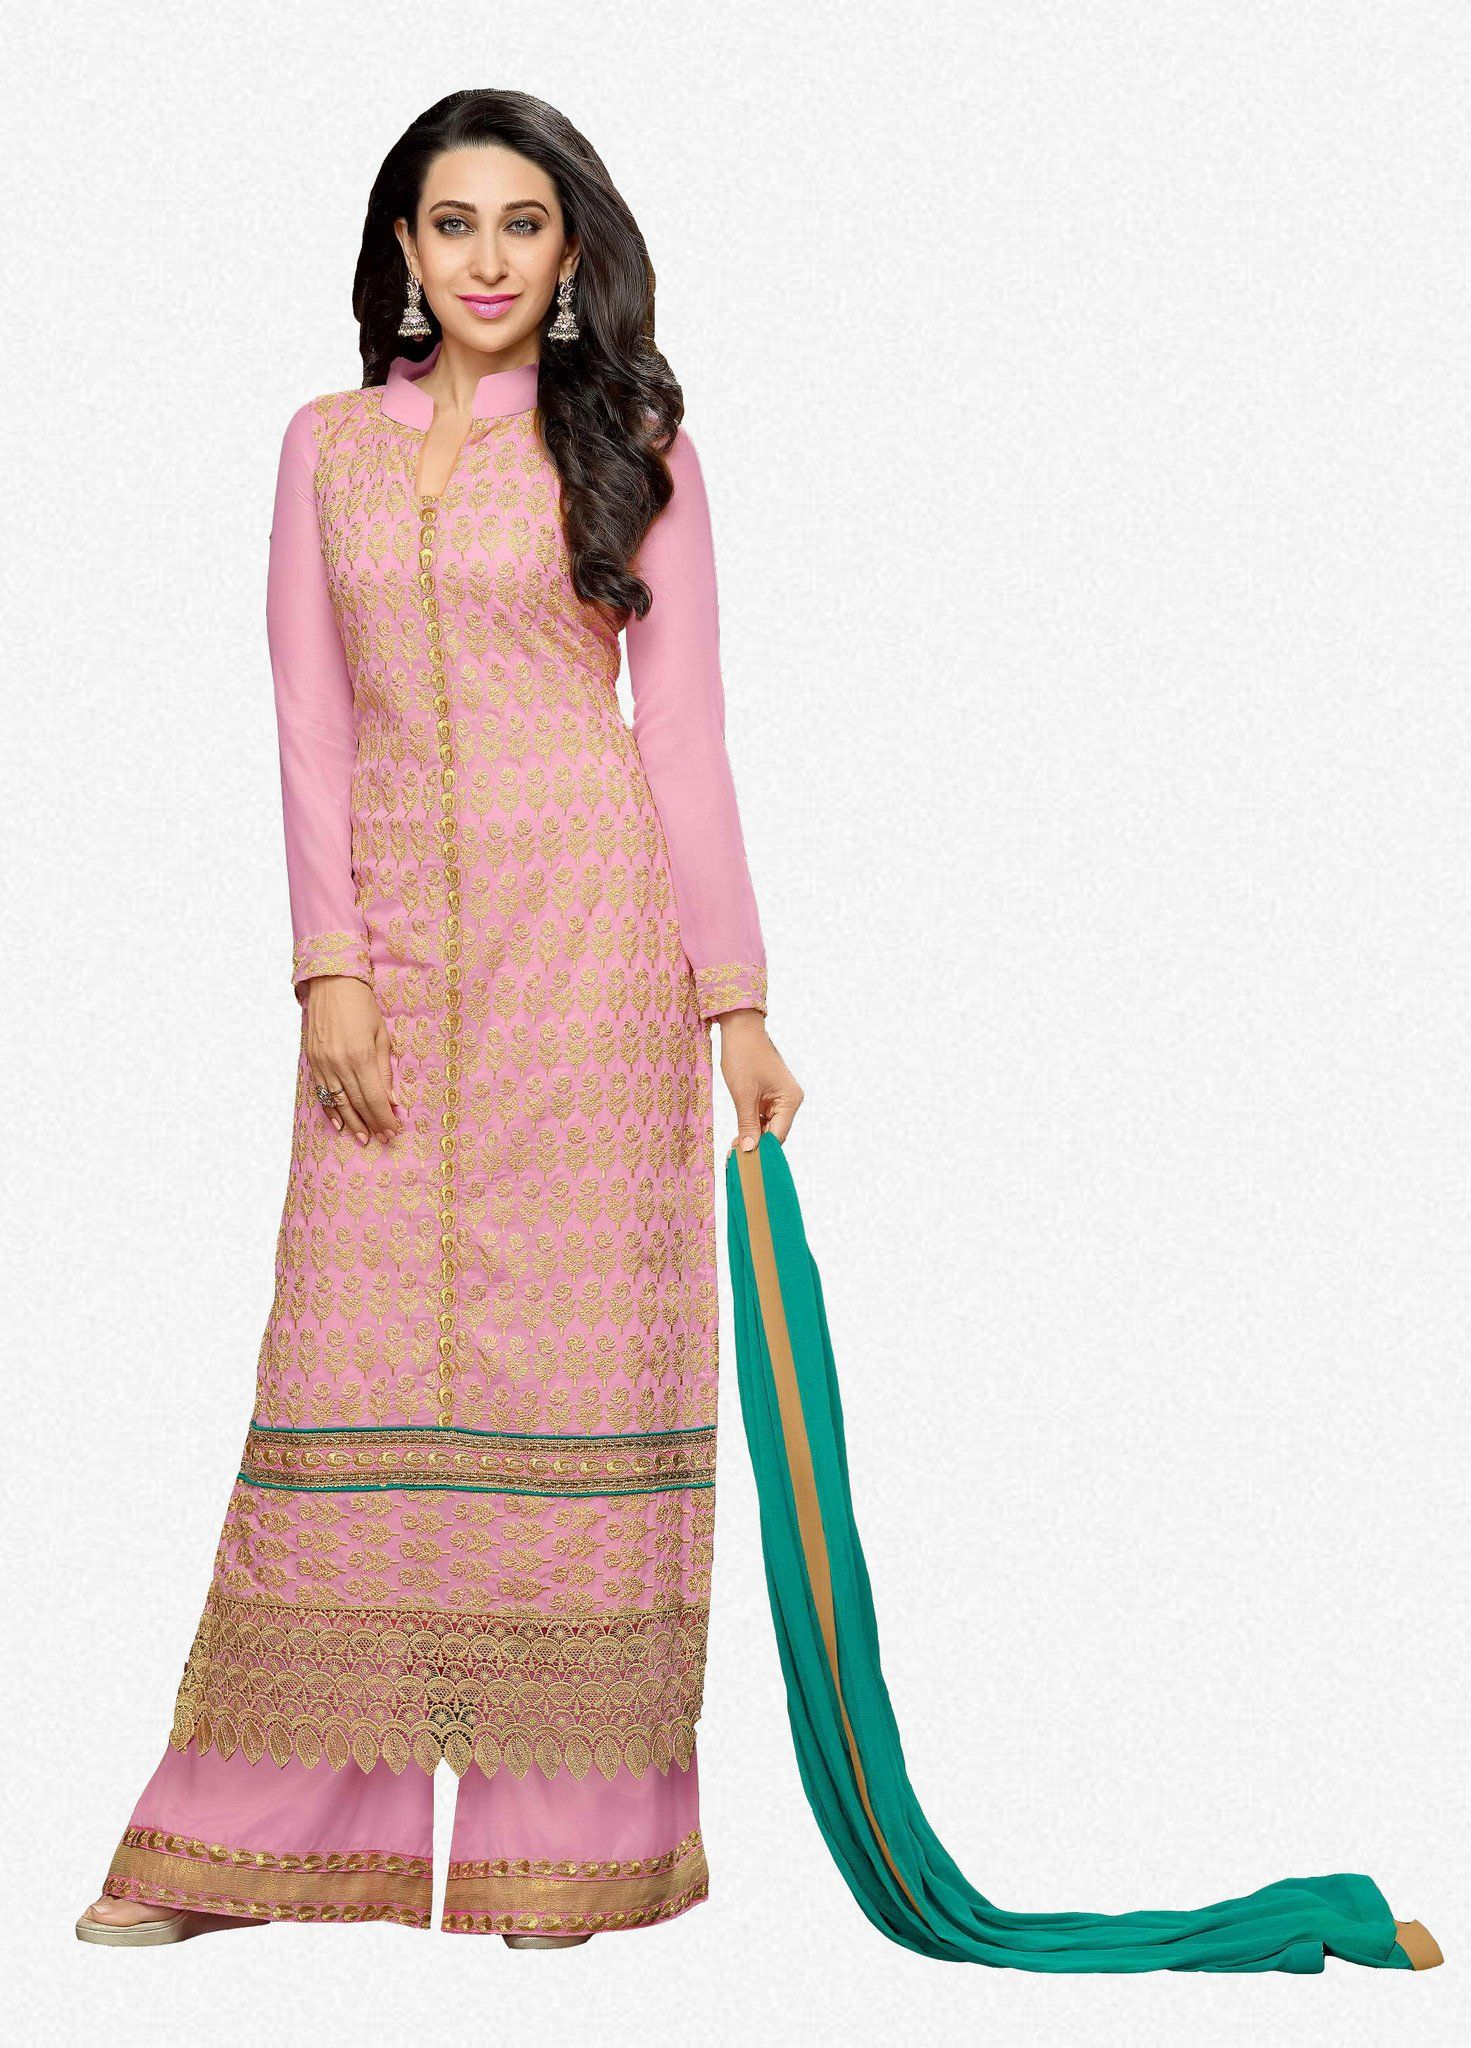 cb1511671c 7506_7_58005   atisundar Salwar Suits and Sarees - Buy the best Indian  Ethnic wear for women online direct from the factory